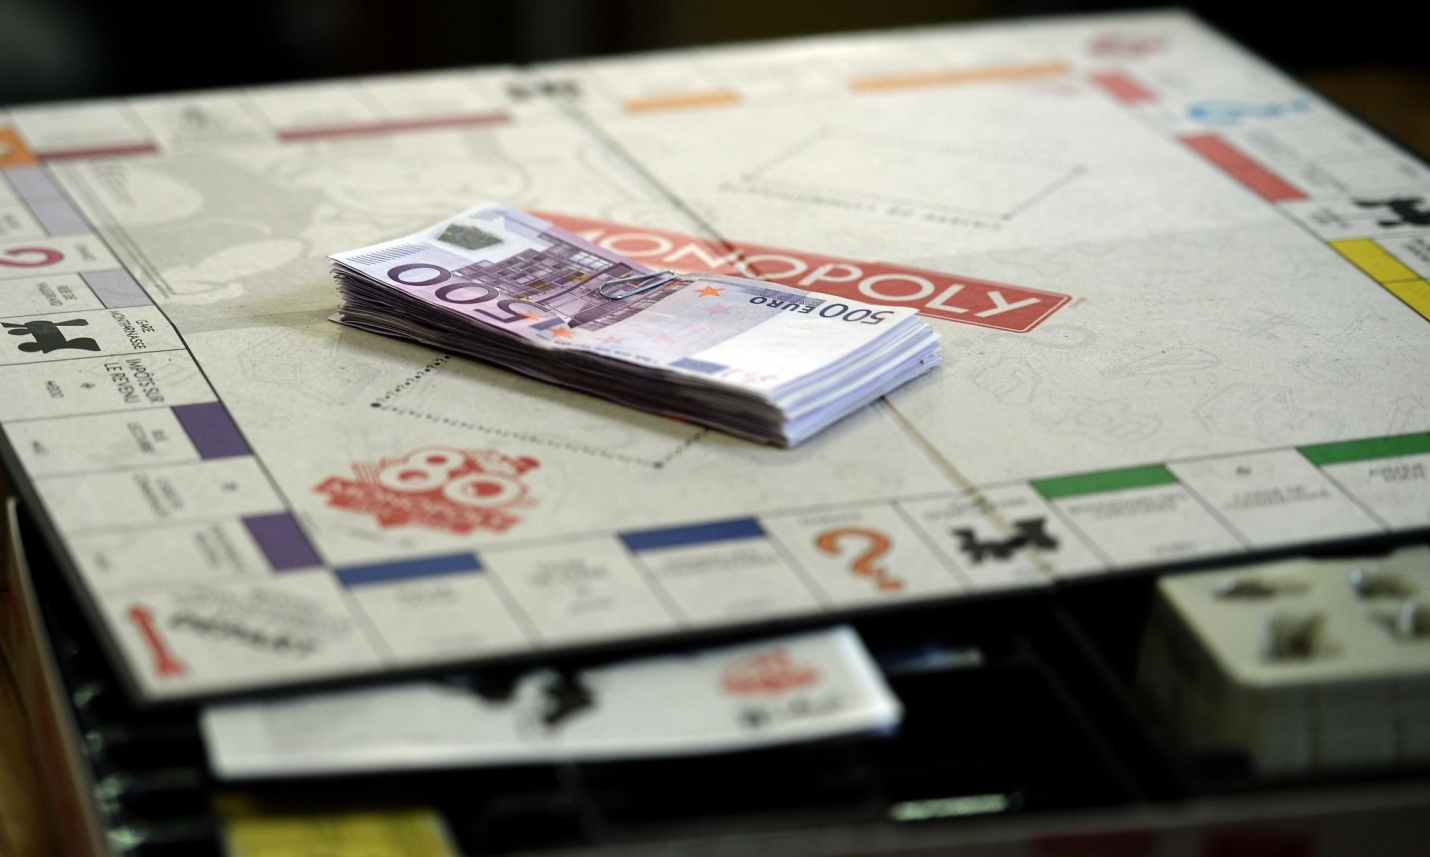 One Monopoly game in France is hiding $20K in real-world cash